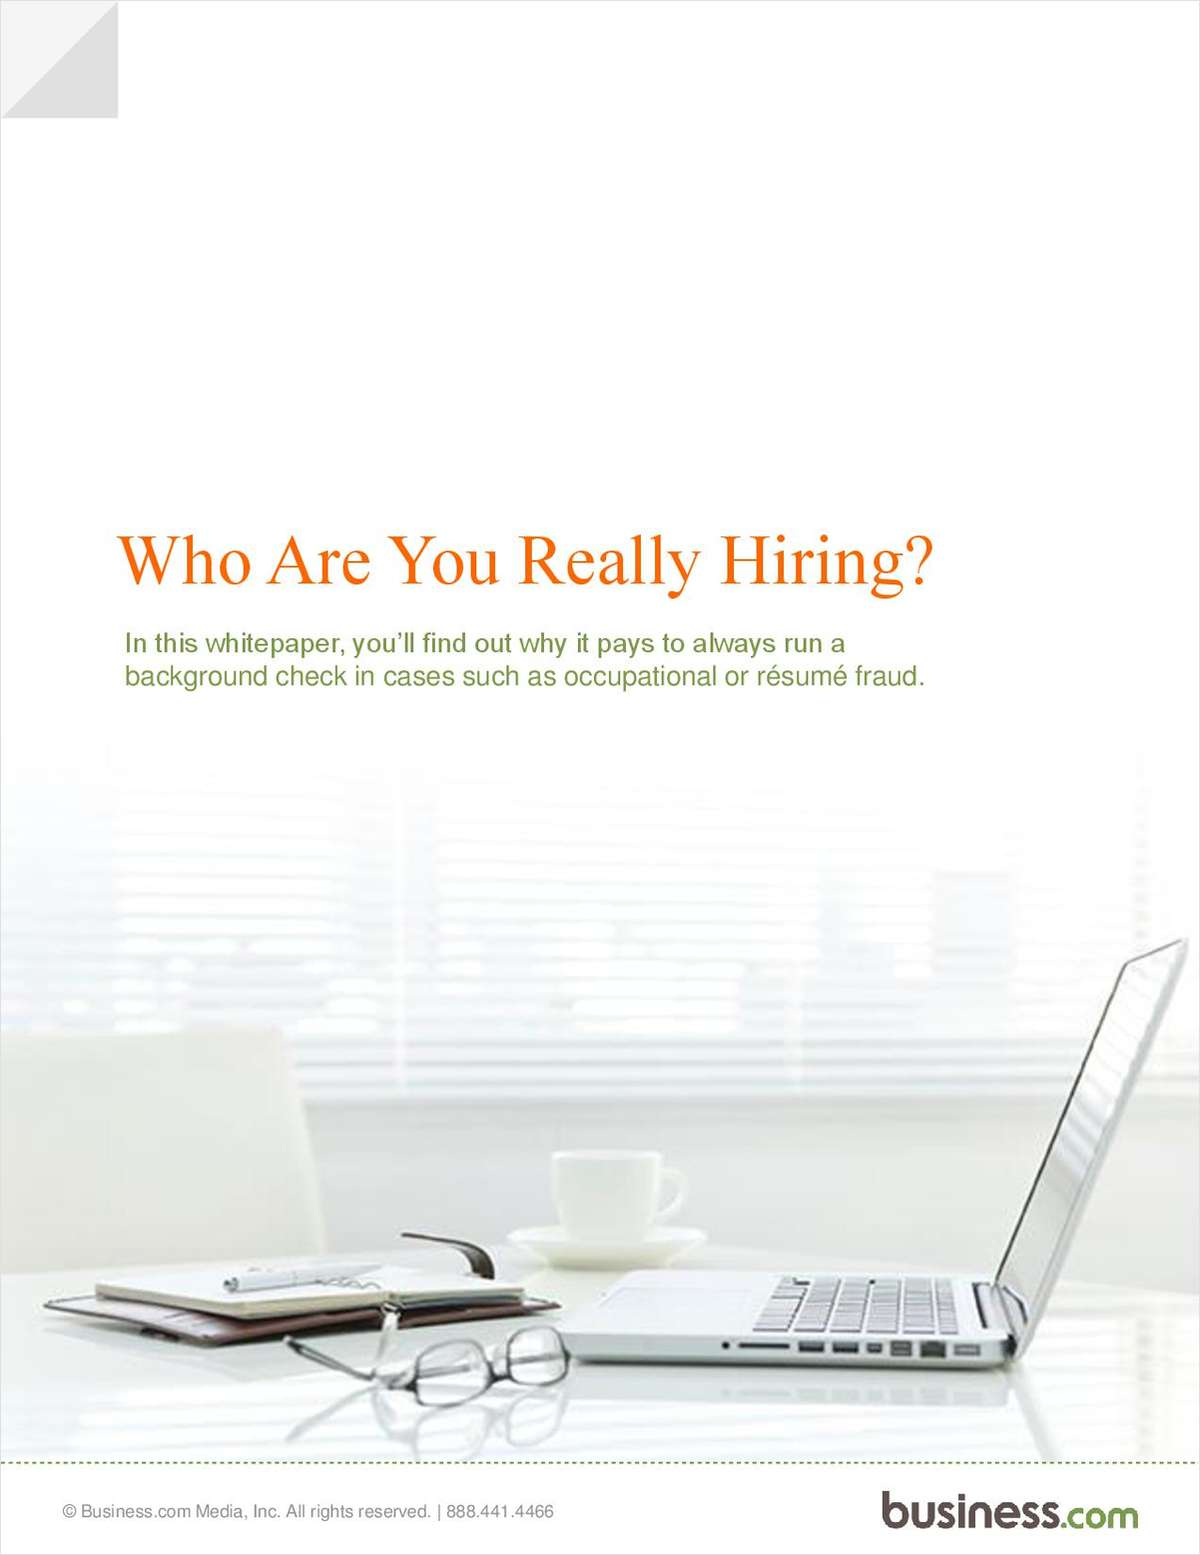 Background Checks:  Understanding Who You Are Hiring